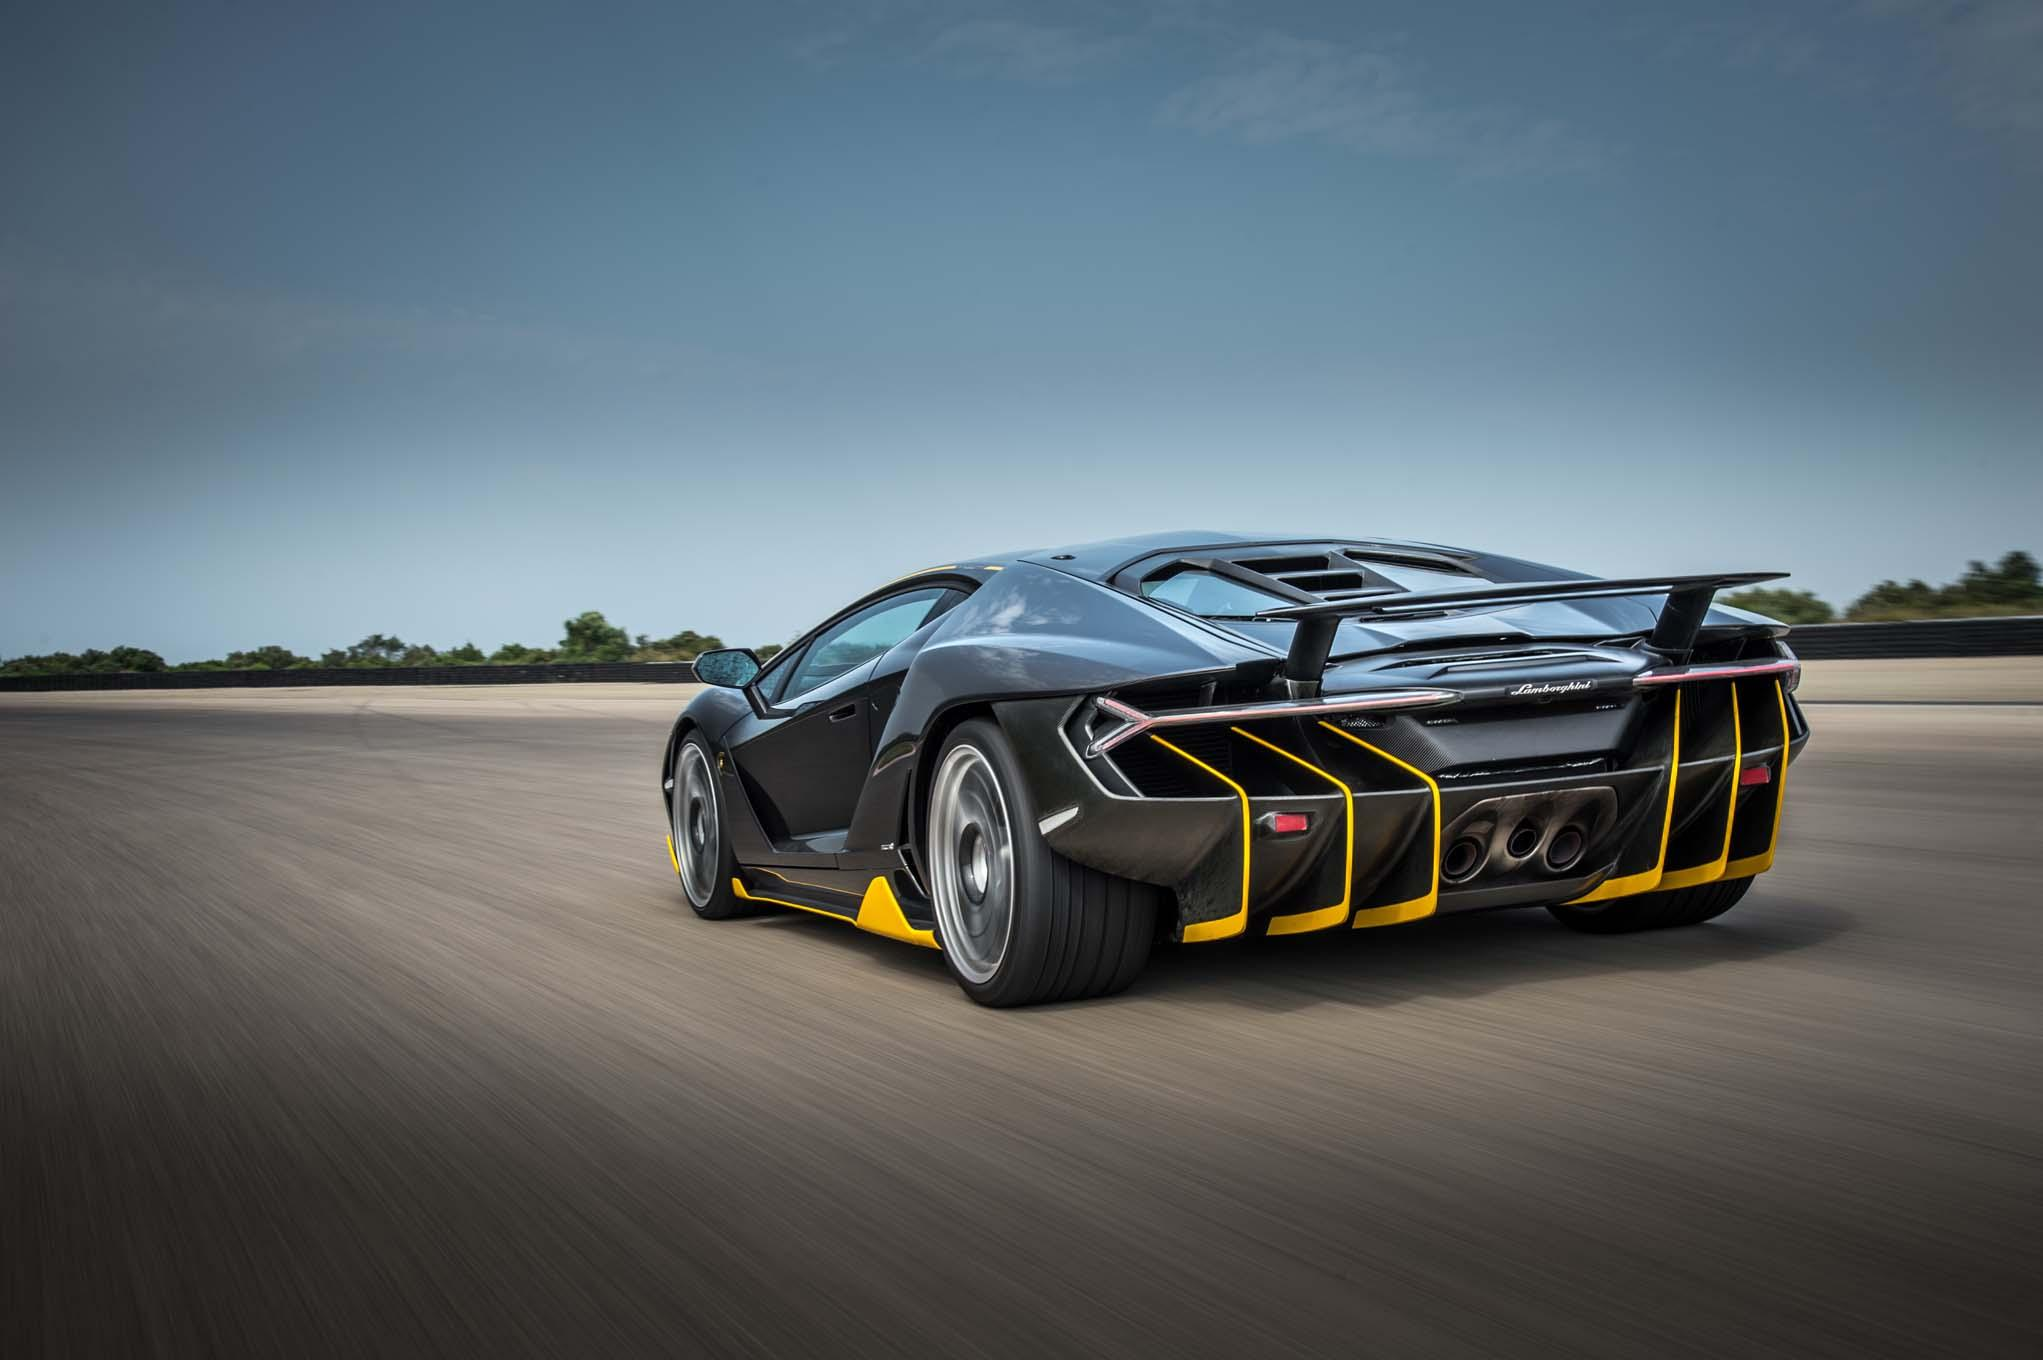 Lamborghini Centenario Lp770 4 Laptimes Specs Performance Data